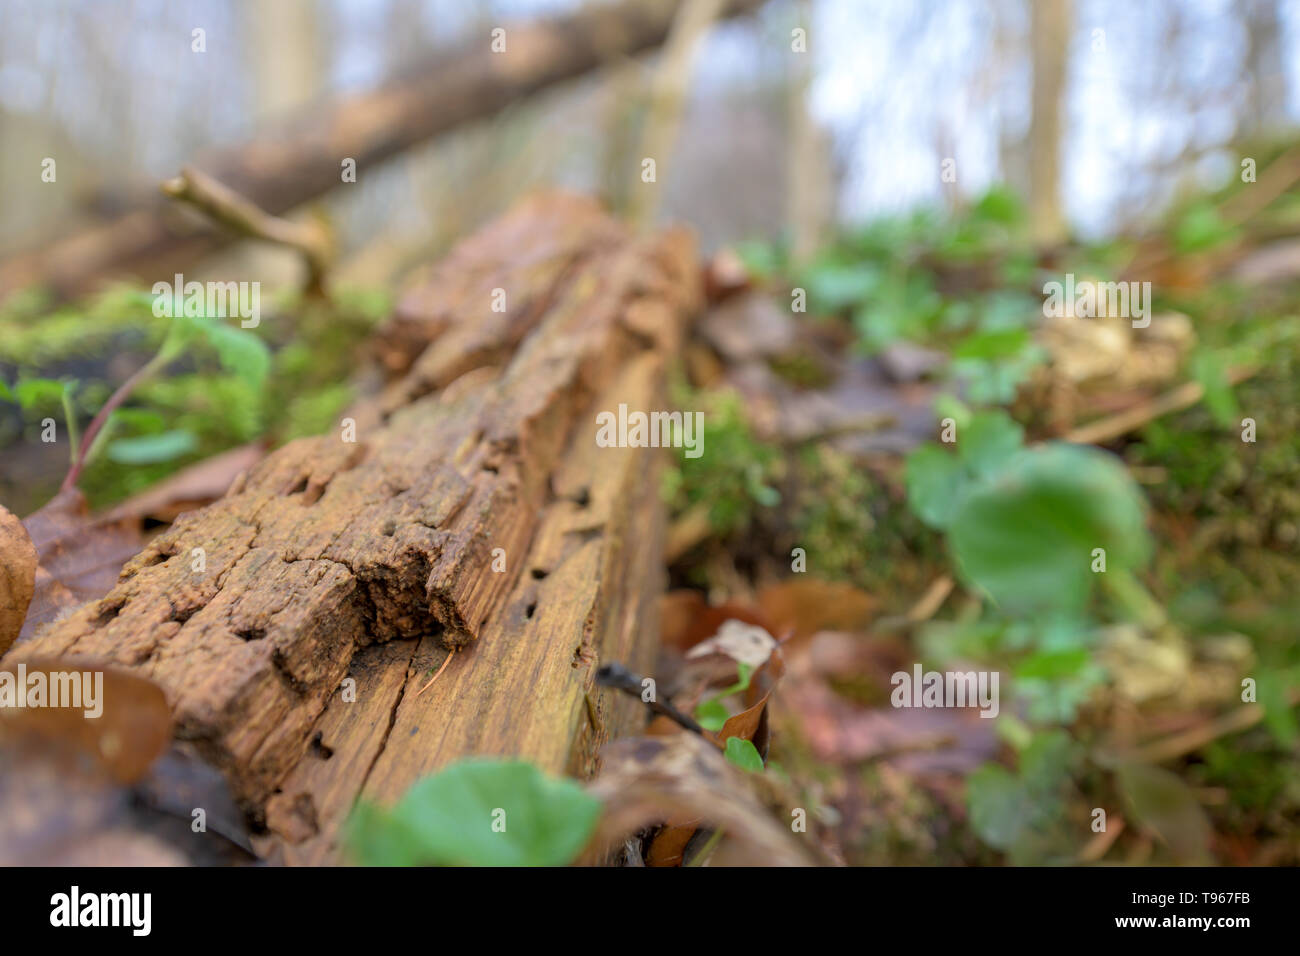 Natural habitat for insects in the forest. Rotten wood as protection to preserve biodiversity - Stock Image